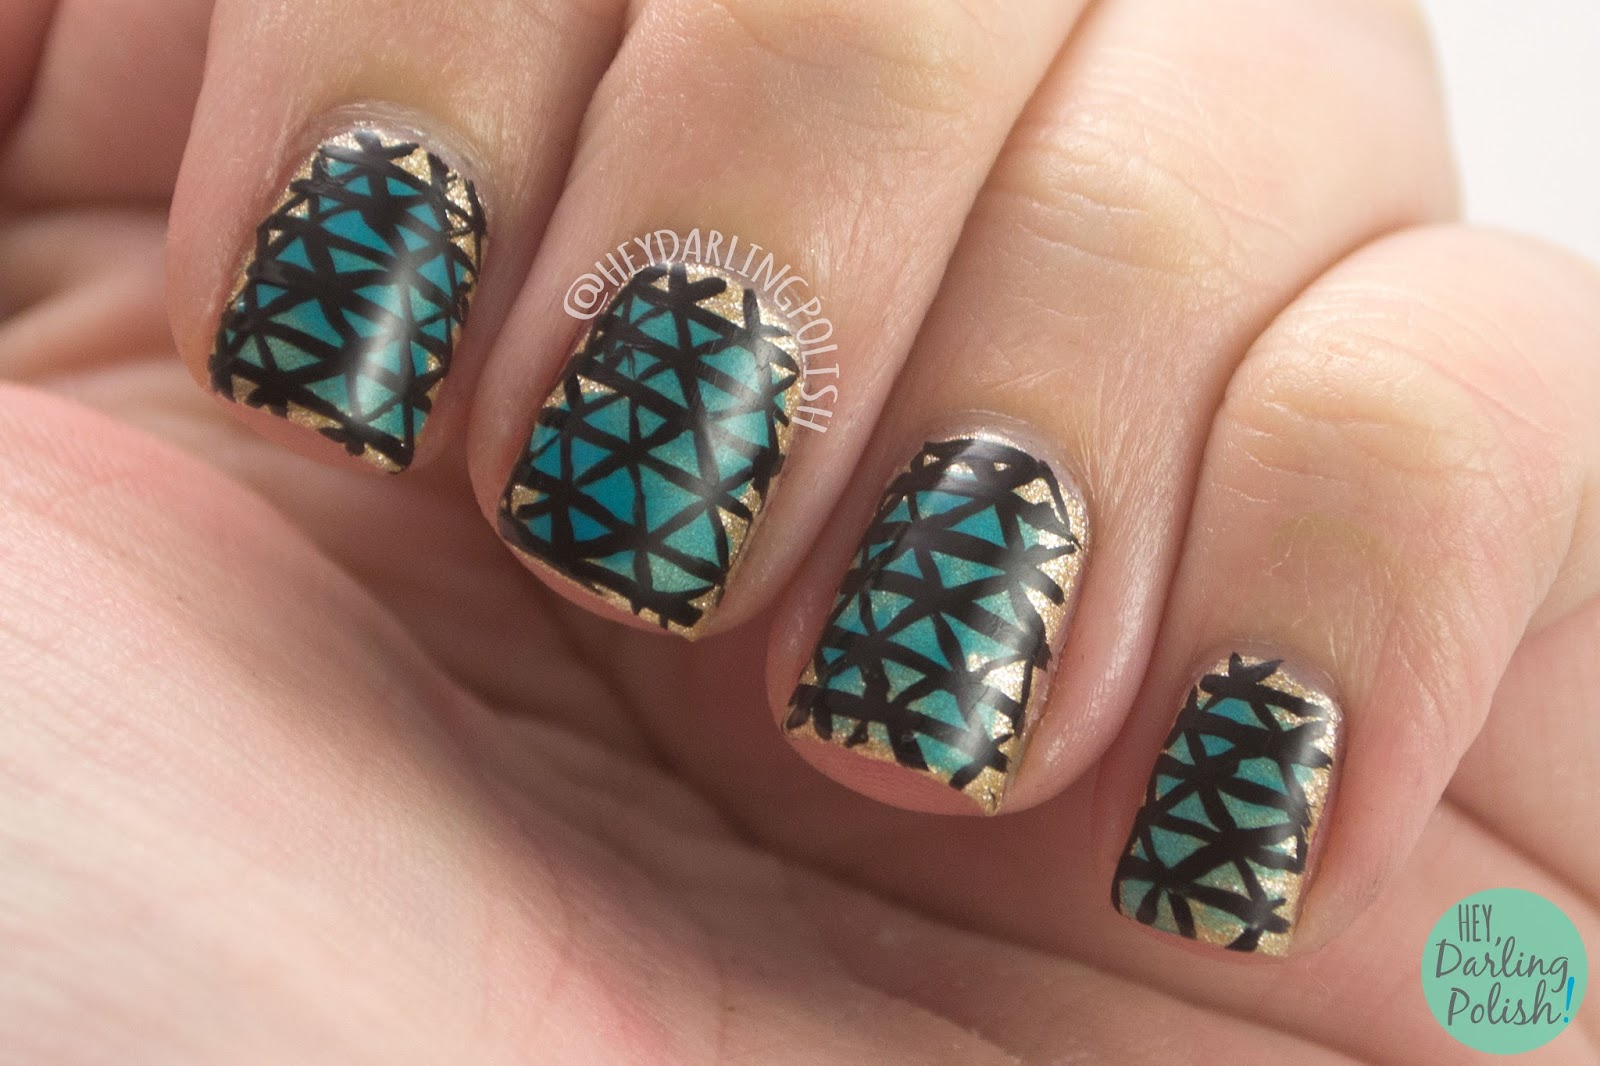 nails, nail art, nail polish, triangle, geometric, hey darling polish, gold, blue, the nail challenge collaborative